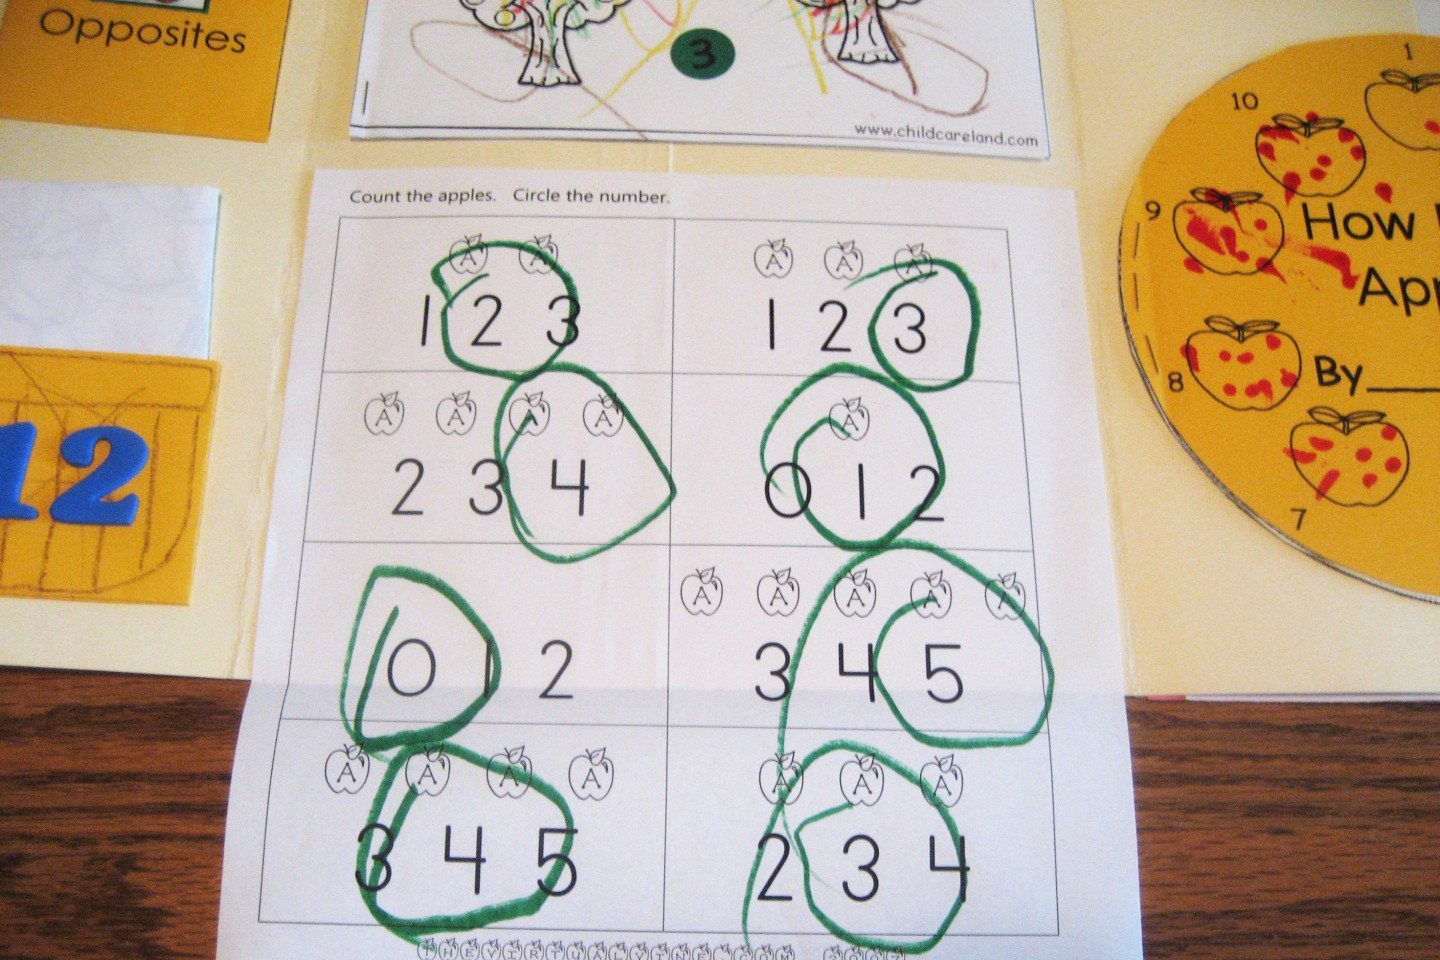 There's a real lack of math learning in pre-K. In one study, in fact, just 58 seconds out of a full preschool day was spent on math activities. (Kaylhew/Flikr Creative Commons)